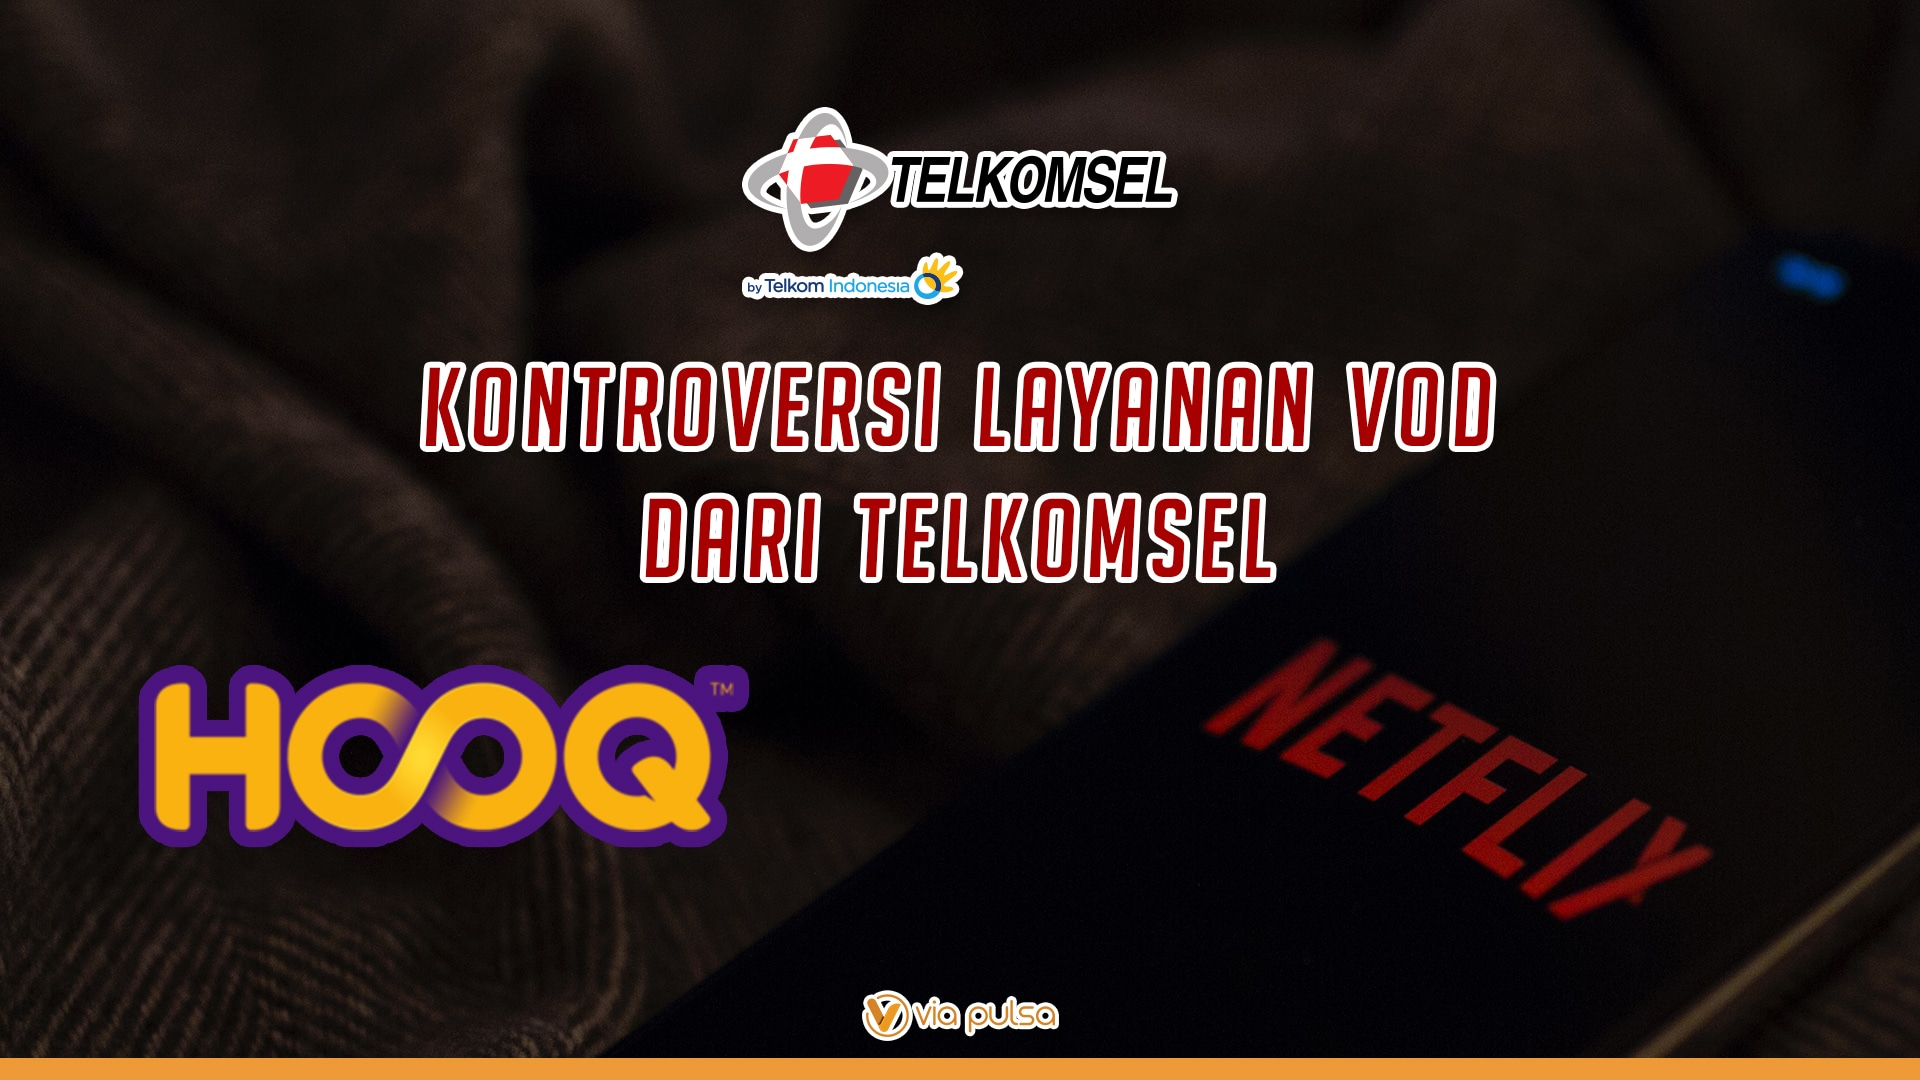 Background Artikel Kontroversi Layanan VOD Dari Telkomsel